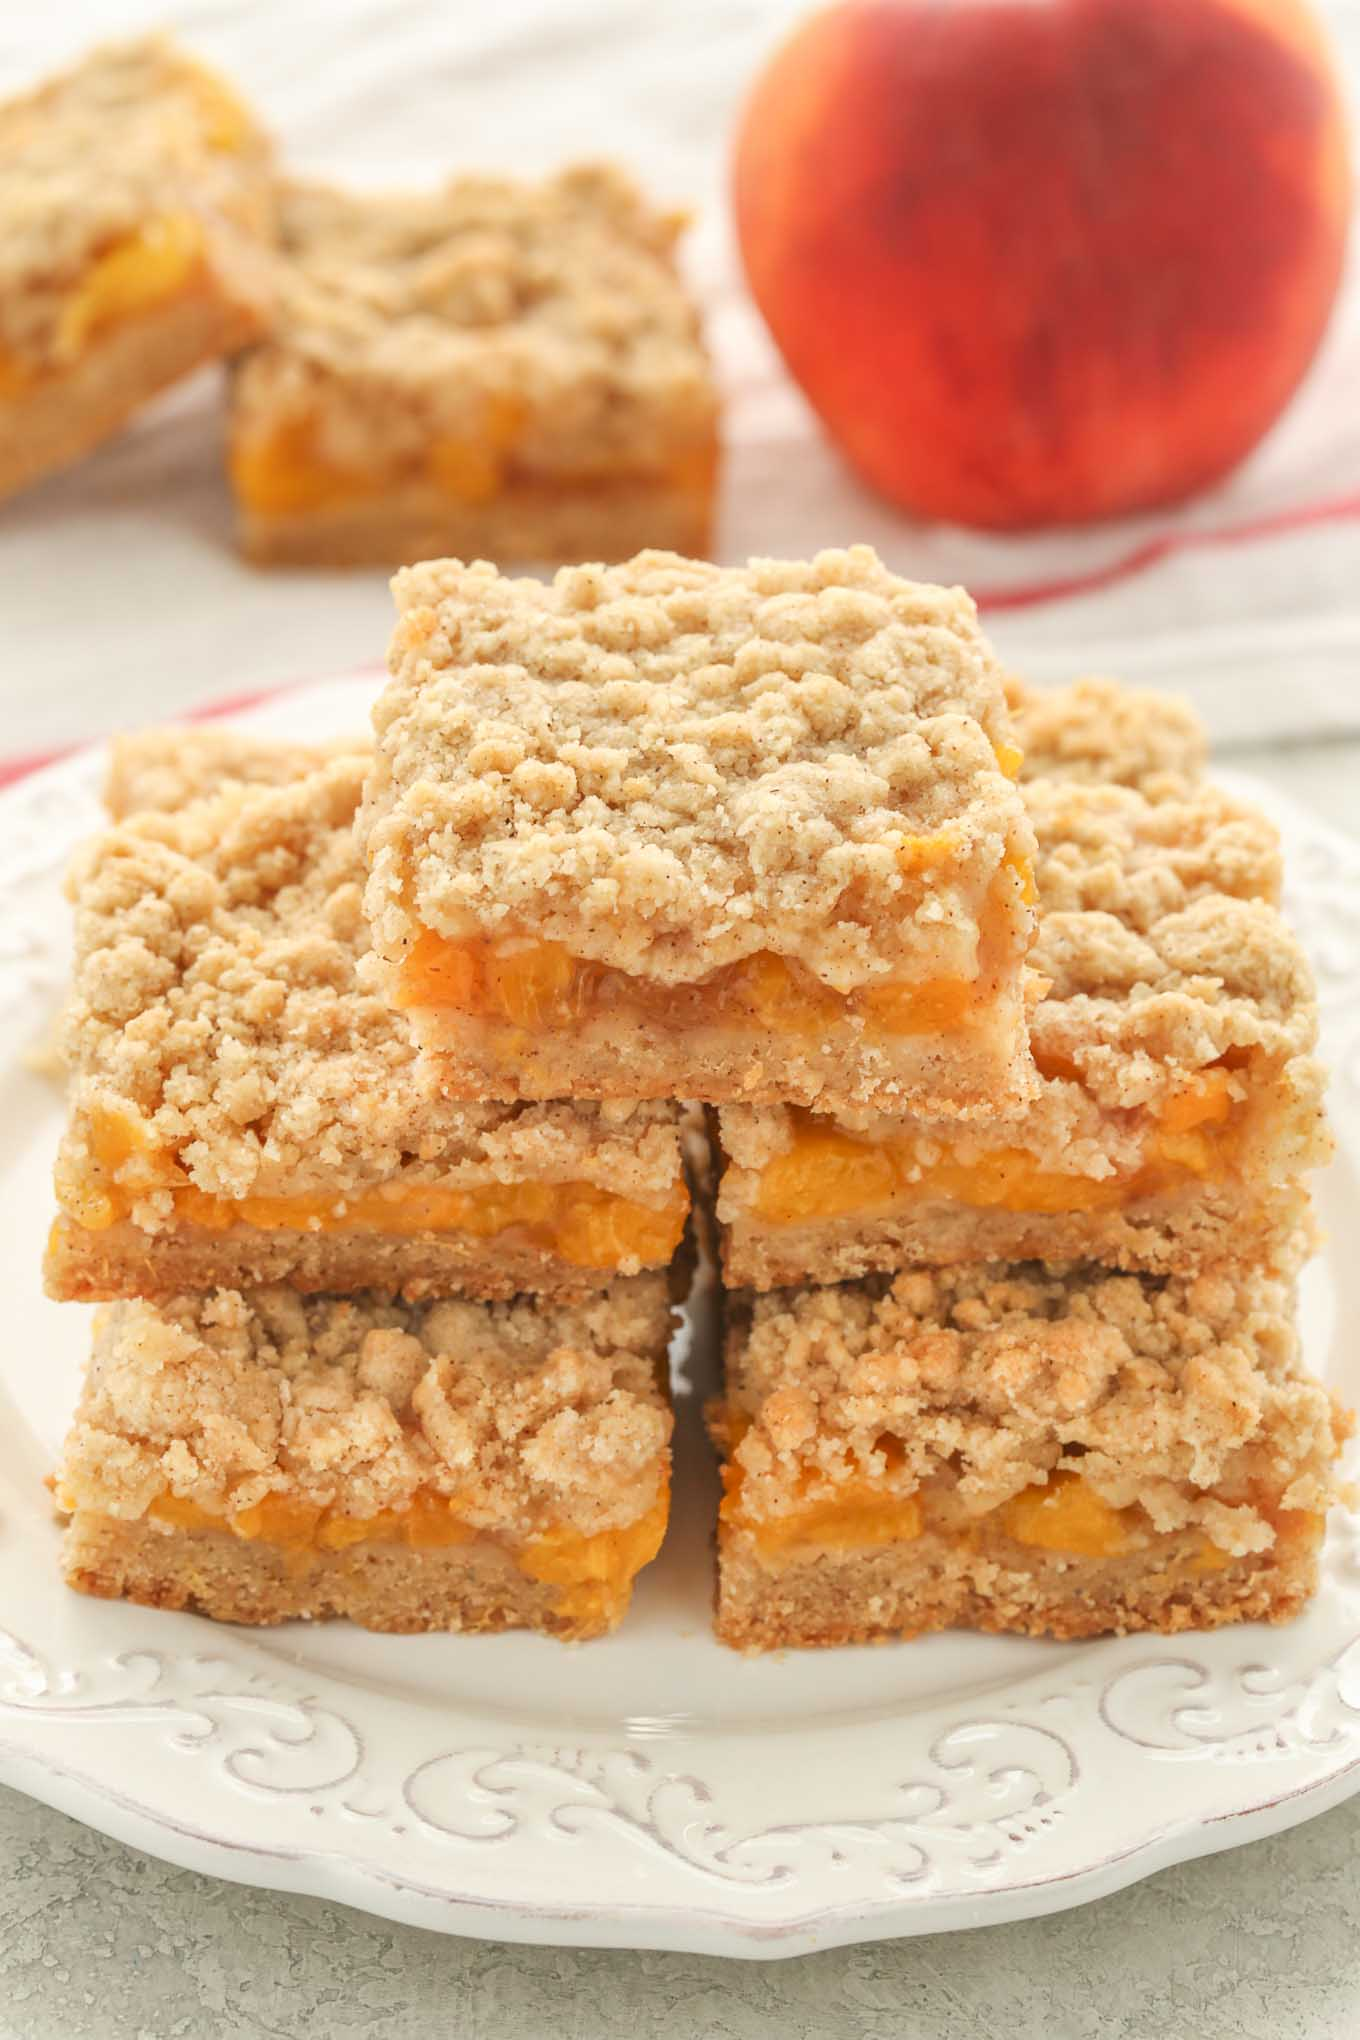 These Peach Crumb Bars use the same buttery crumb mixture for the crust and topping and are filled with an easy peach filling!